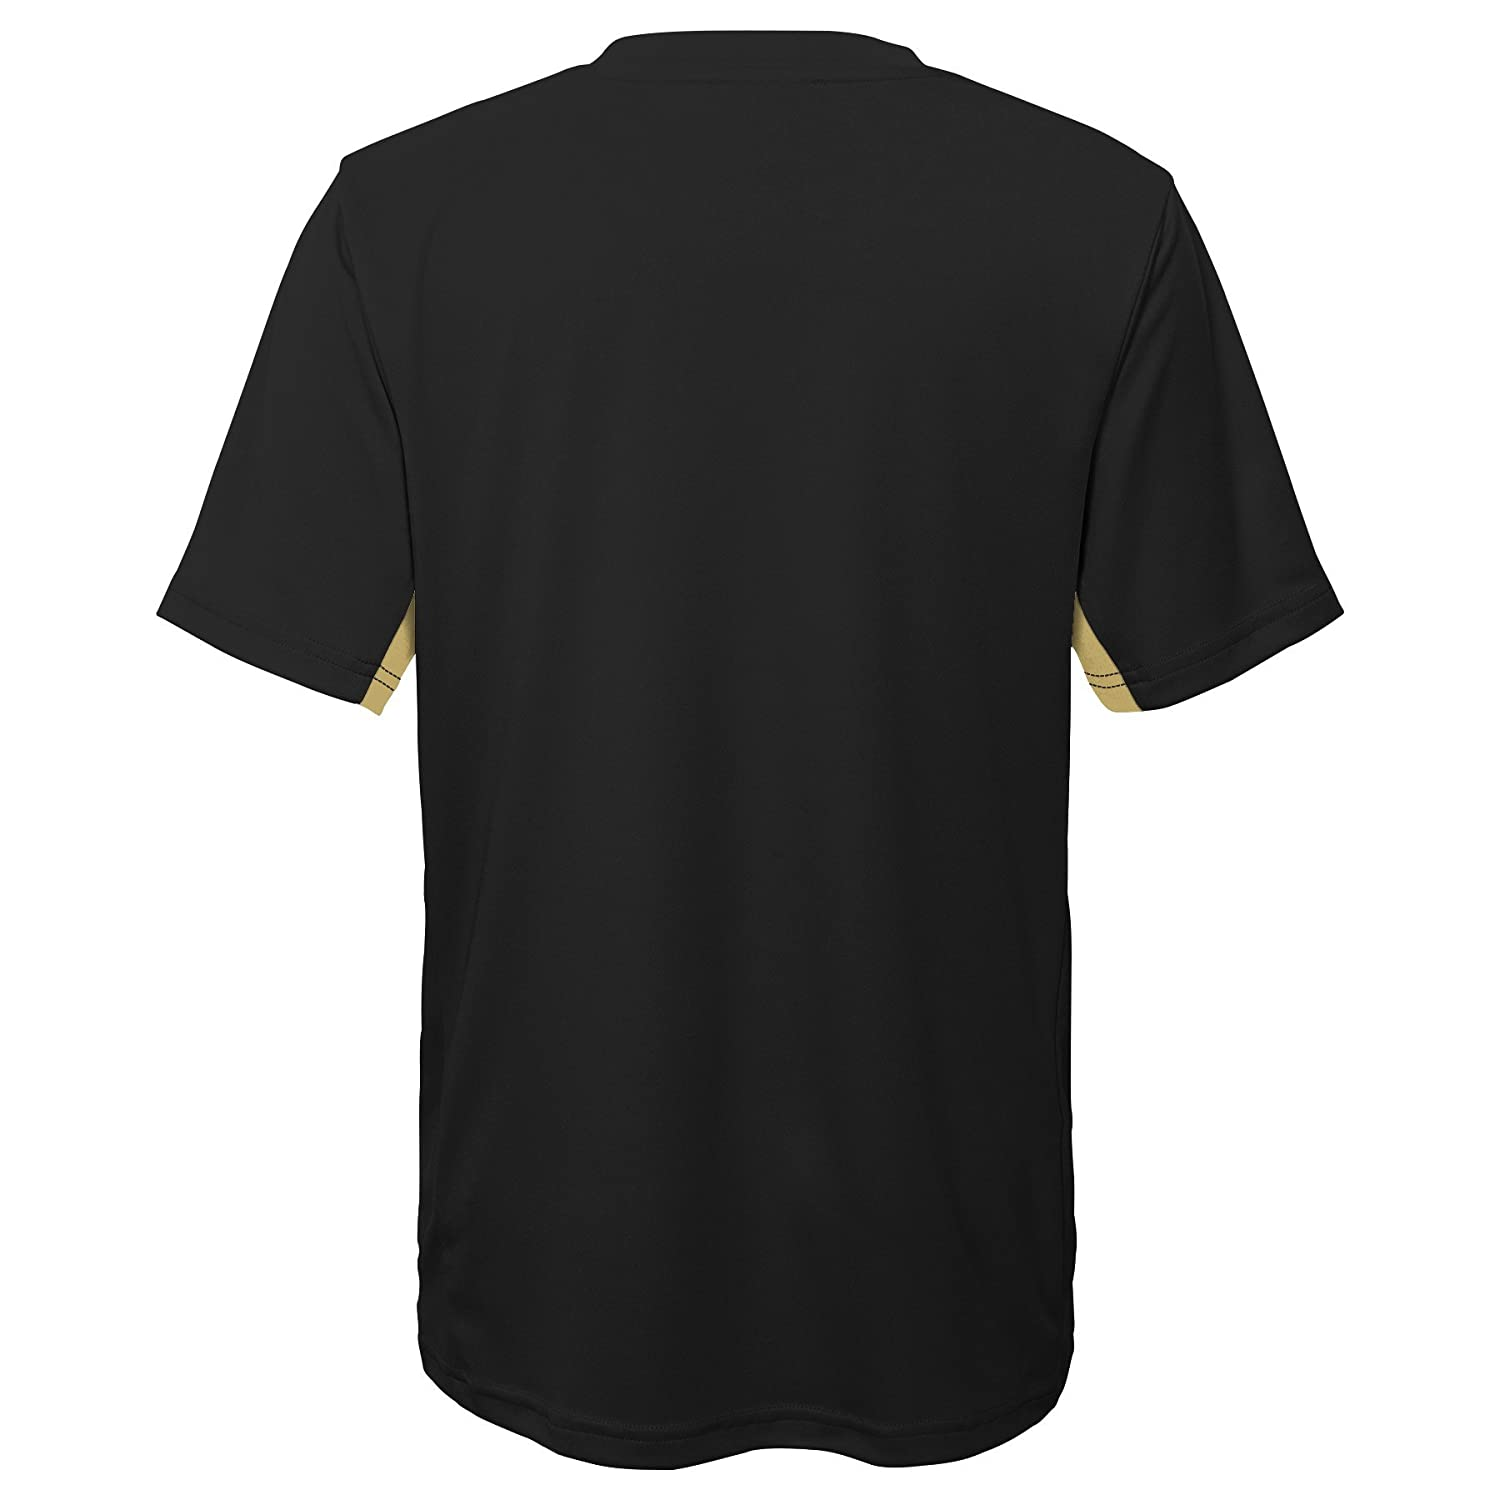 NCAA by Outerstuff NCAA Central Florida Golden Knights Youth Boys Mainframe: Short Sleeve Performance Top Black Youth Large 14-16